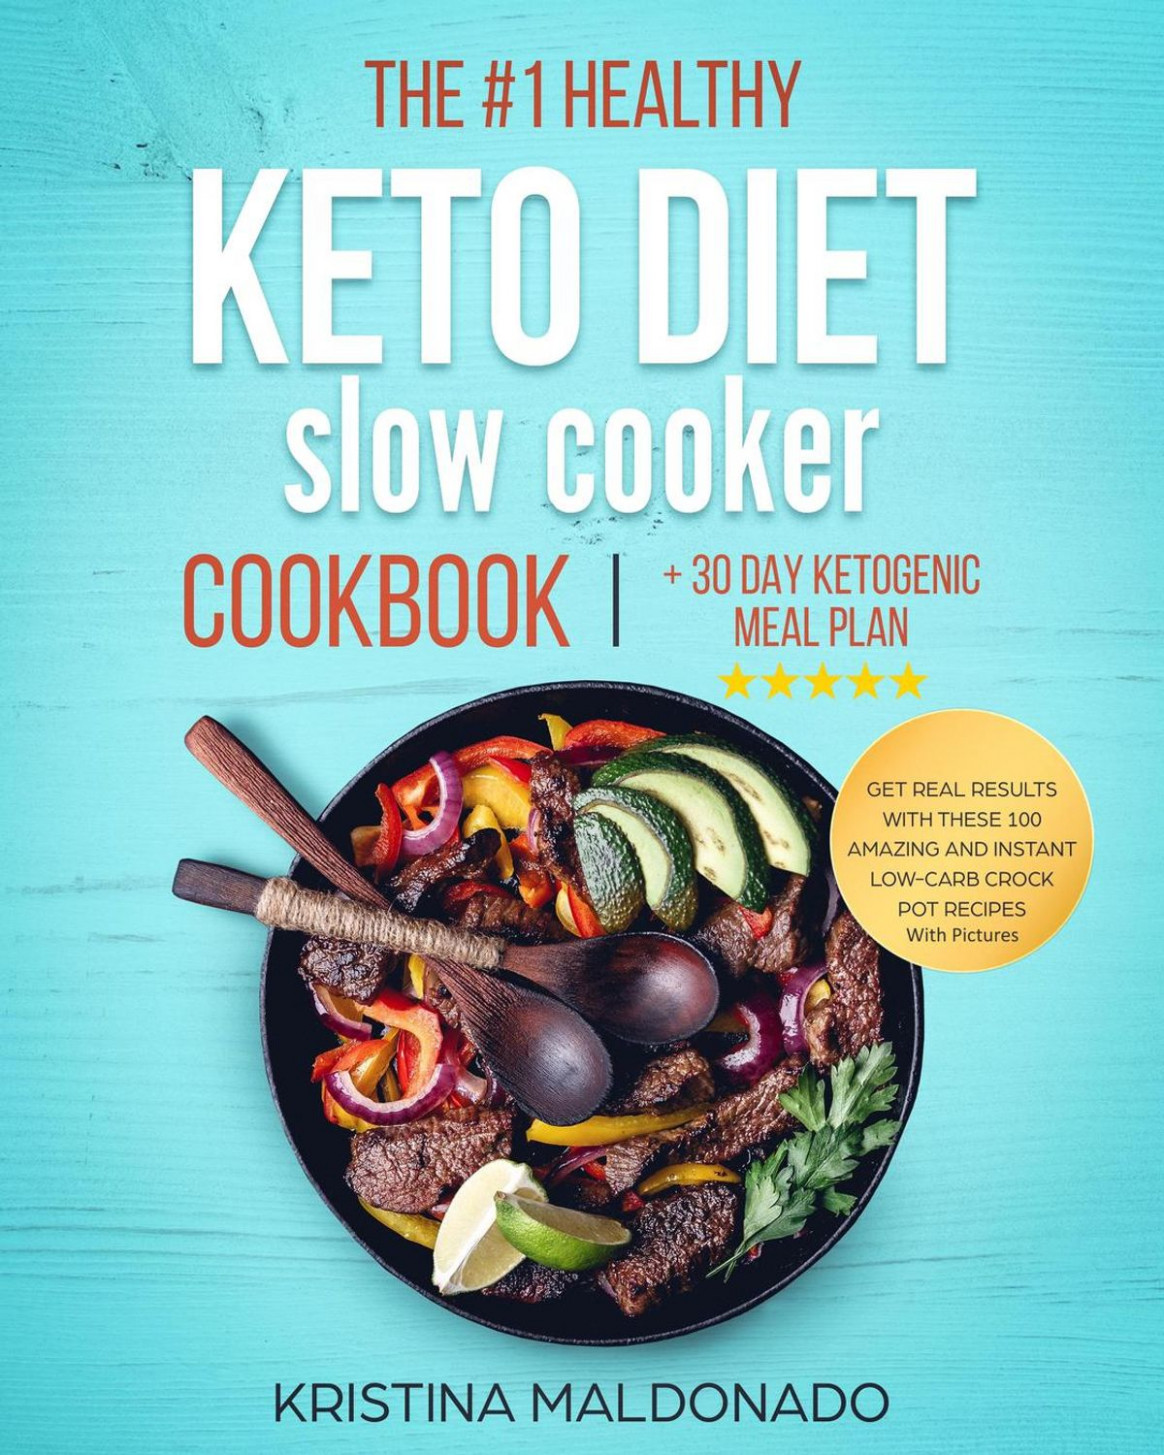 The #14 Healthy Keto Diet Slow Cooker Cookbook + 14 Day Ketogenic Meal Plan:  Get Real Results with These 1400 Amazing and Instant Low-Carb Crock Pot ..